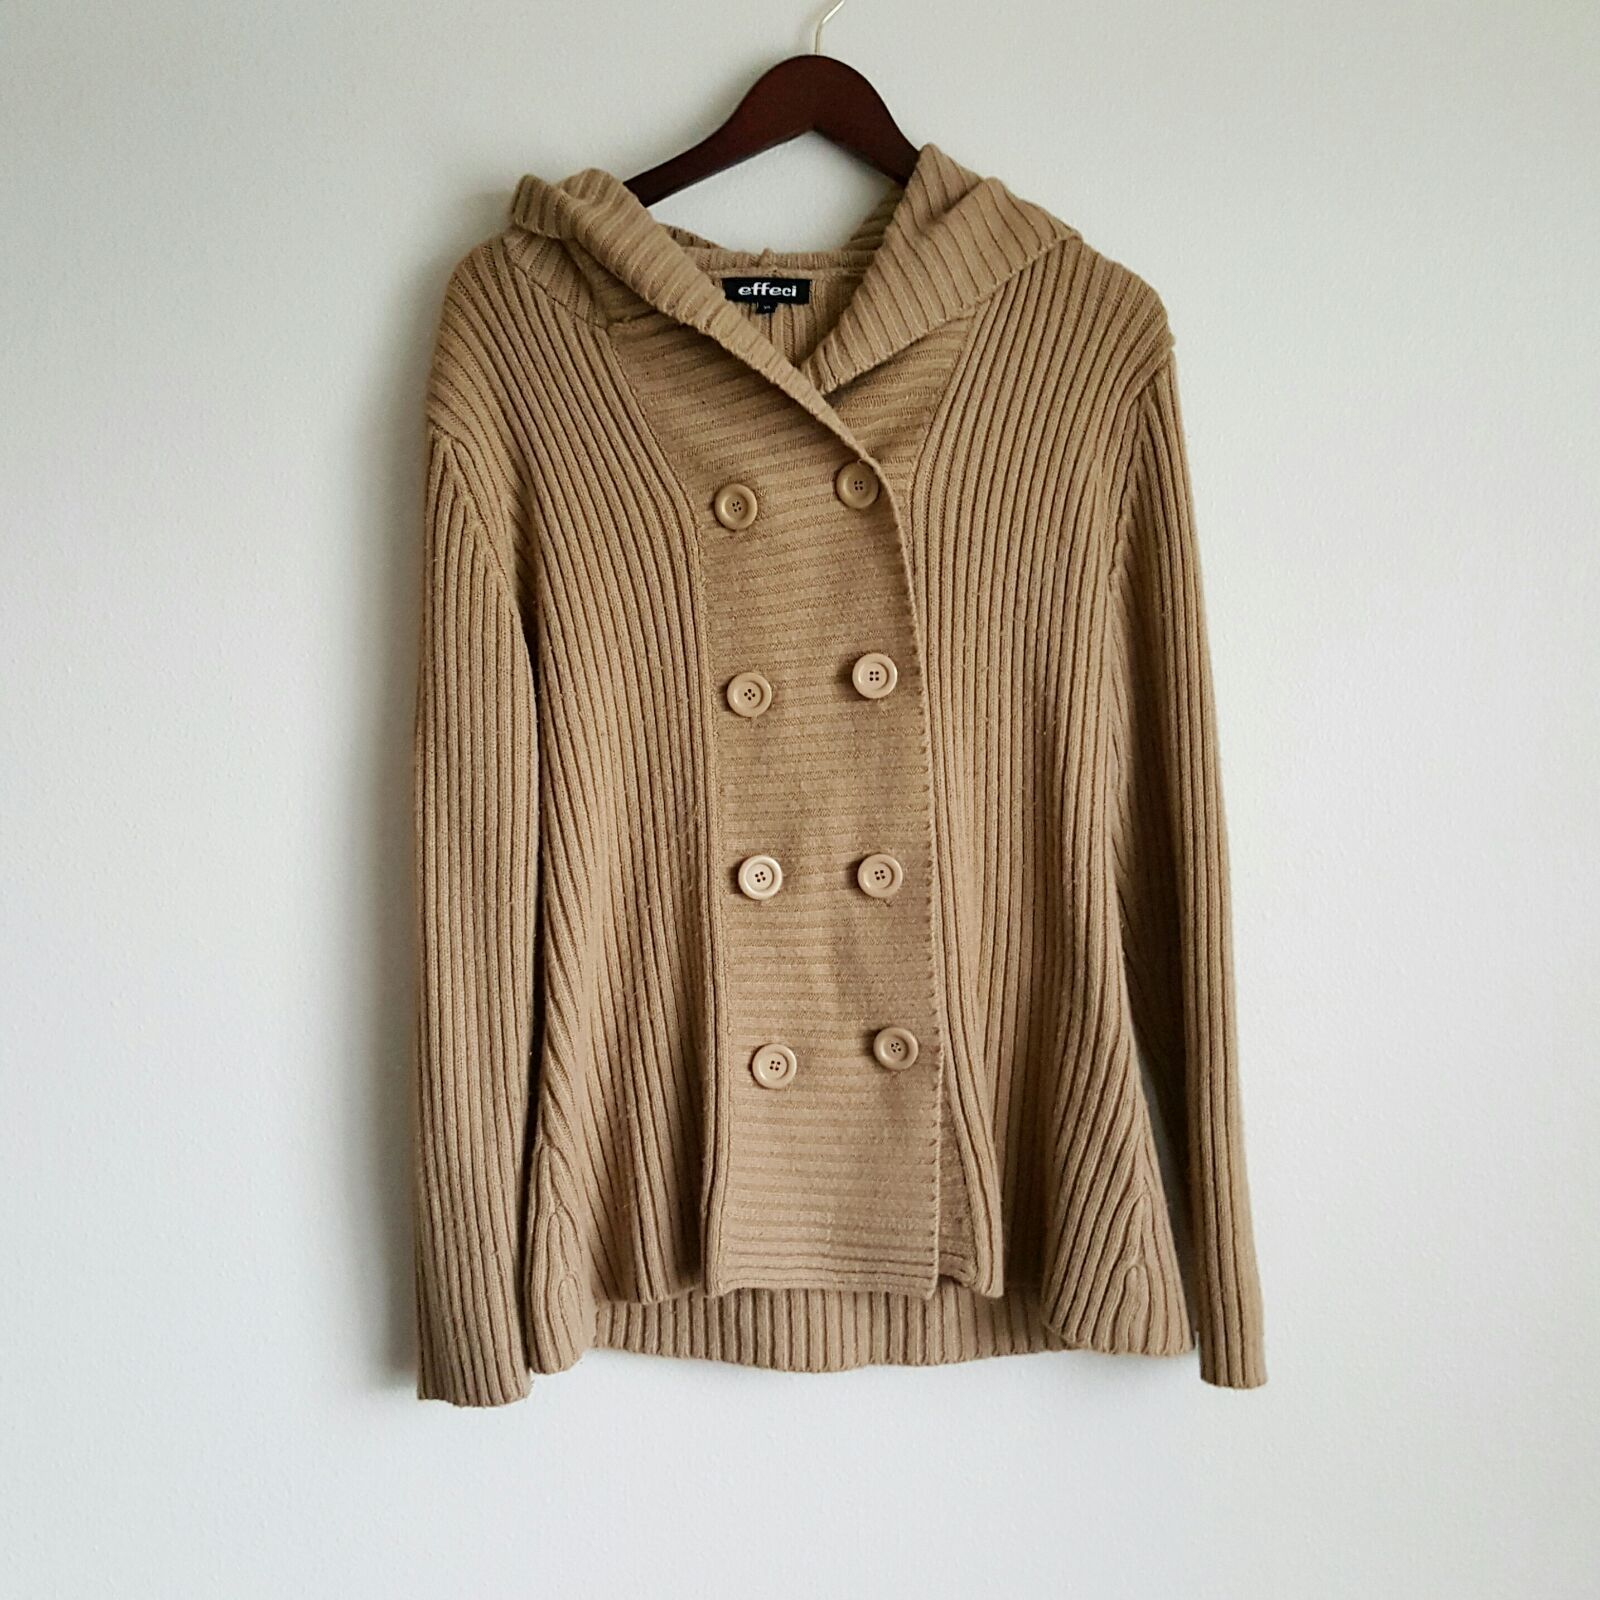 Camel knit button up cardigan sweater - Mercari: BUY & SELL THINGS ...